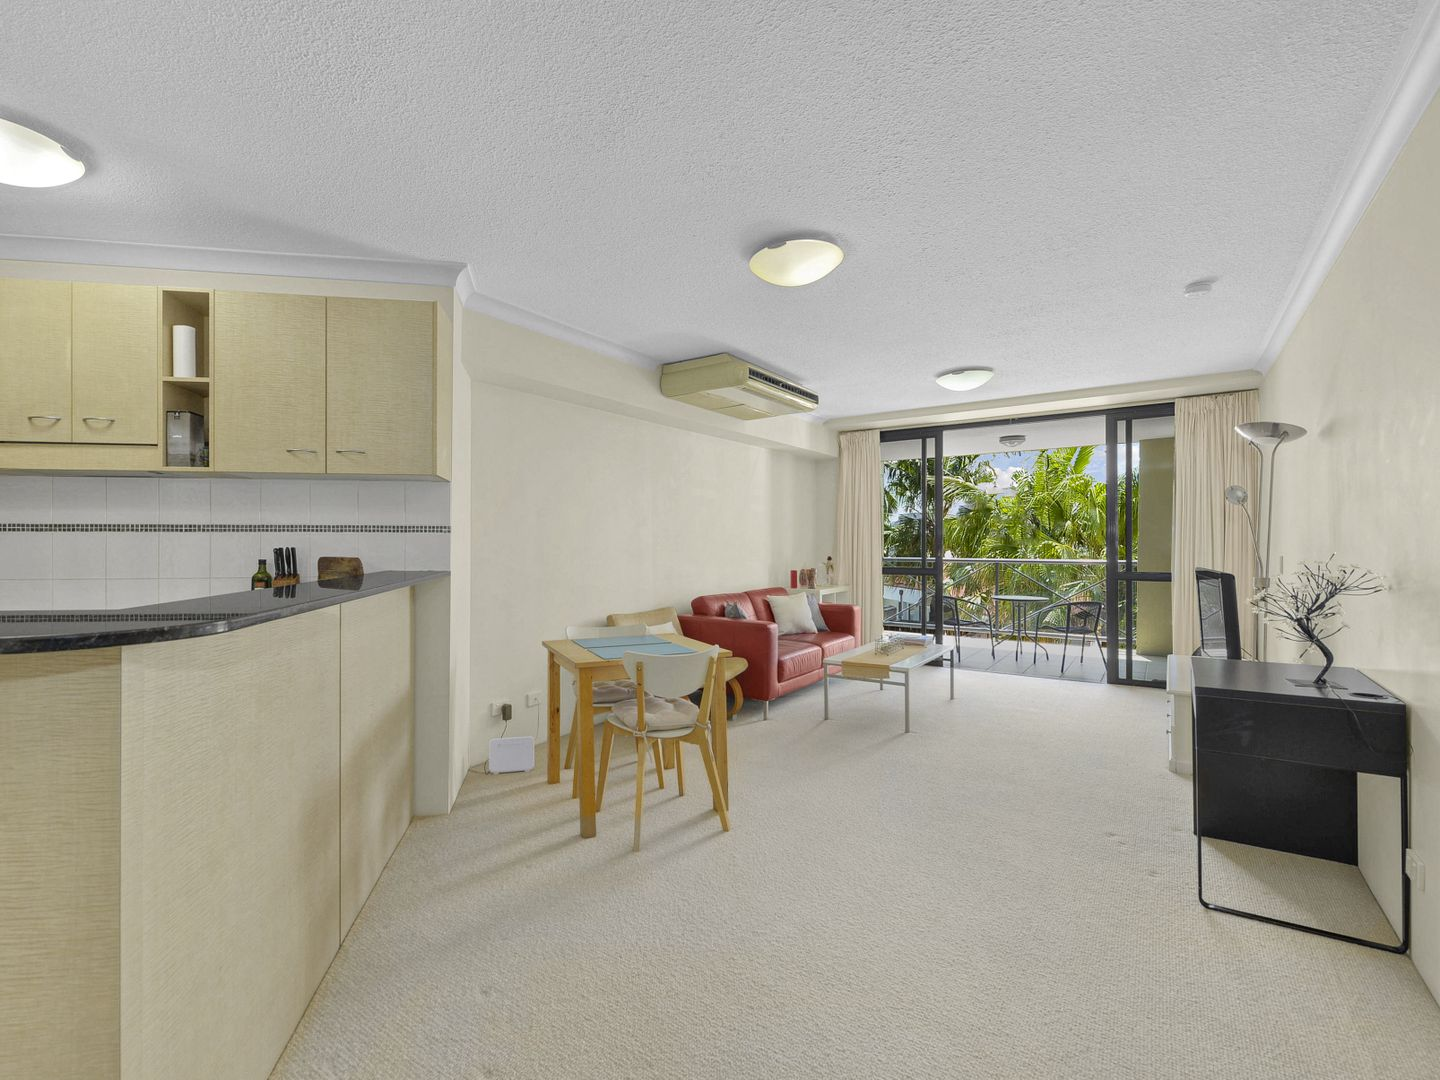 112/100 Bowen Terrace, Fortitude Valley QLD 4006, Image 1